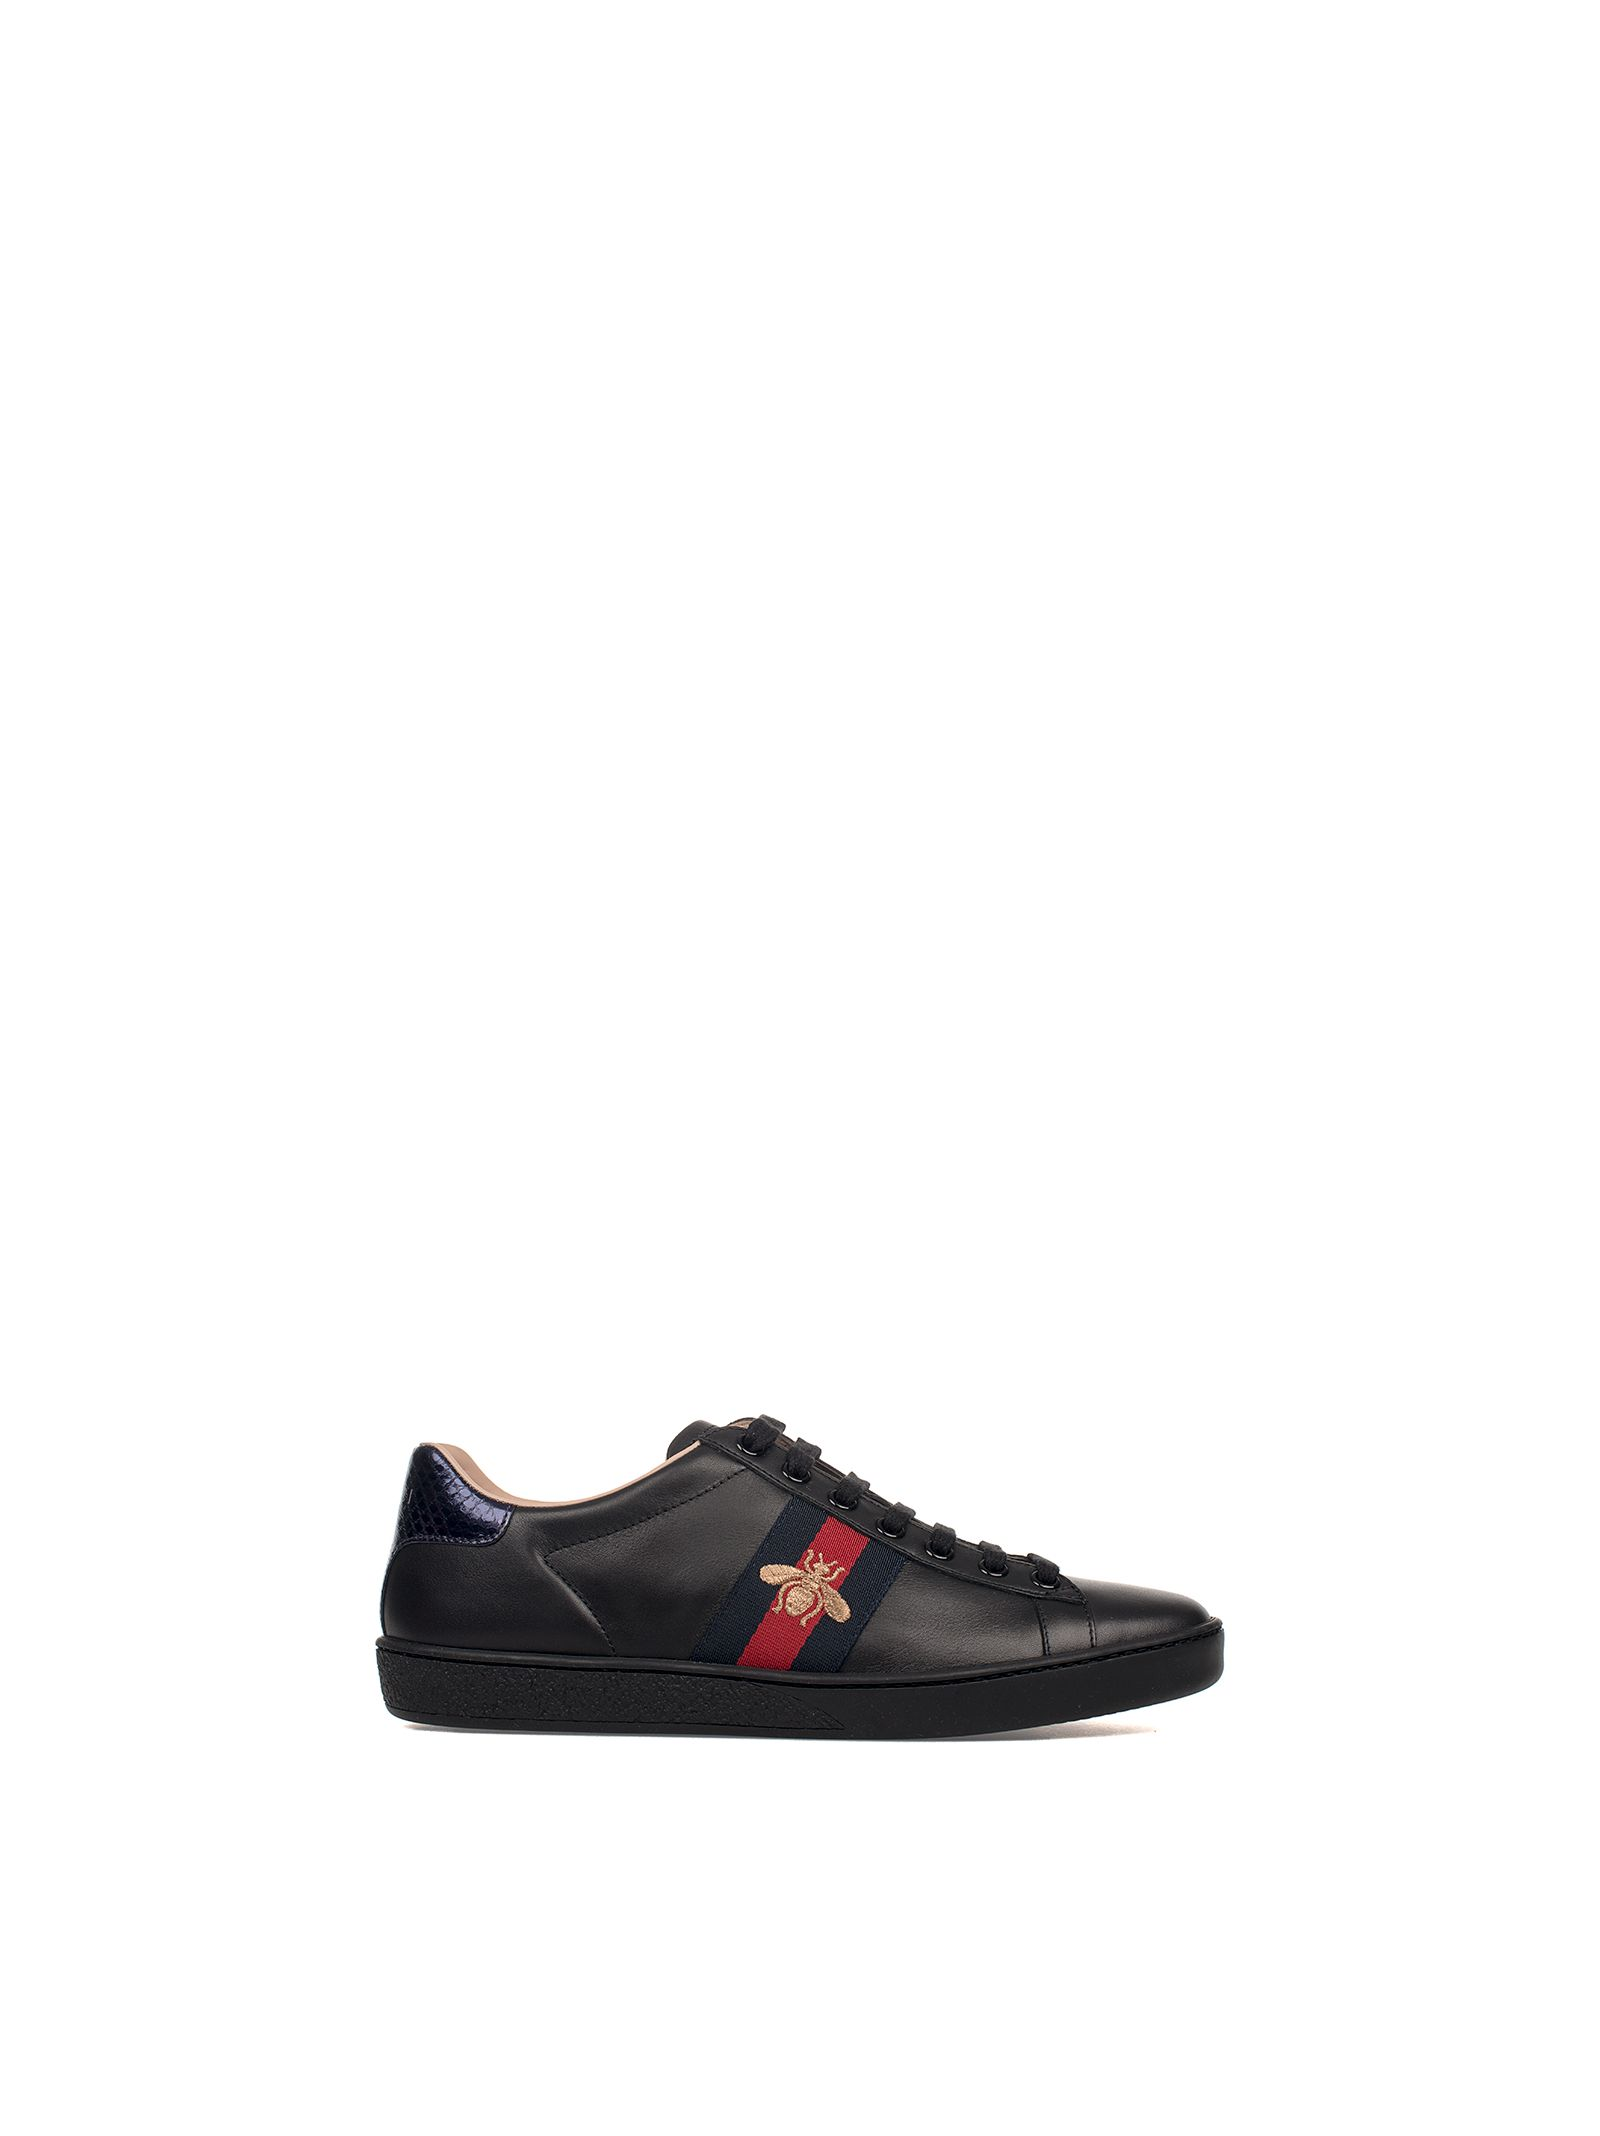 gucci female blackredblue embroidery ace leather sneakers